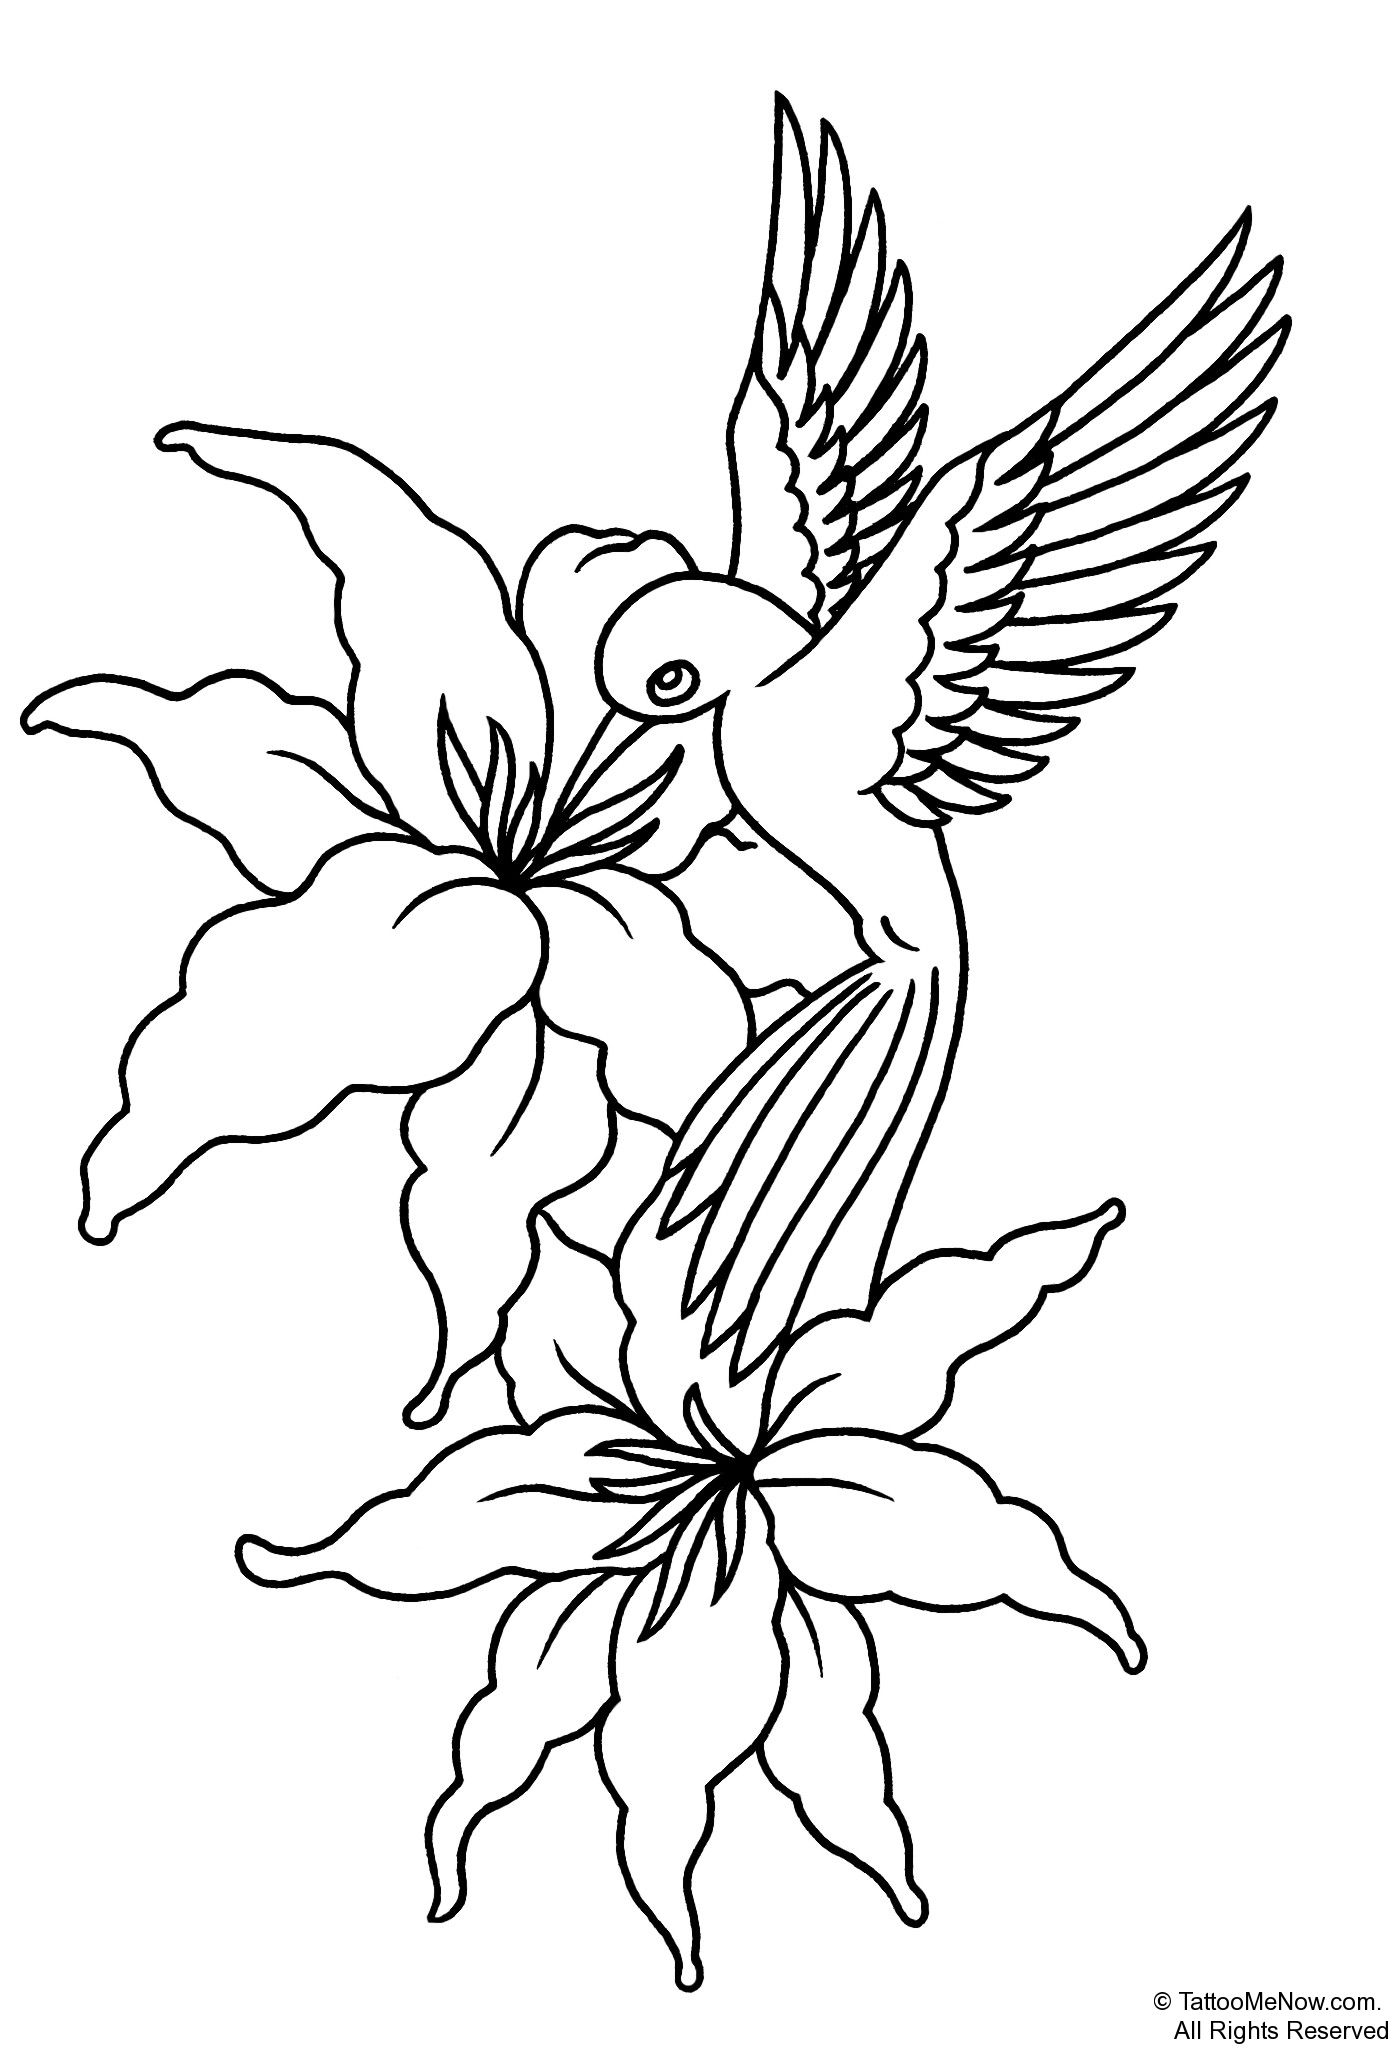 Flower Stencils Printable Your Free Printable Tattoo Ideas And Designs